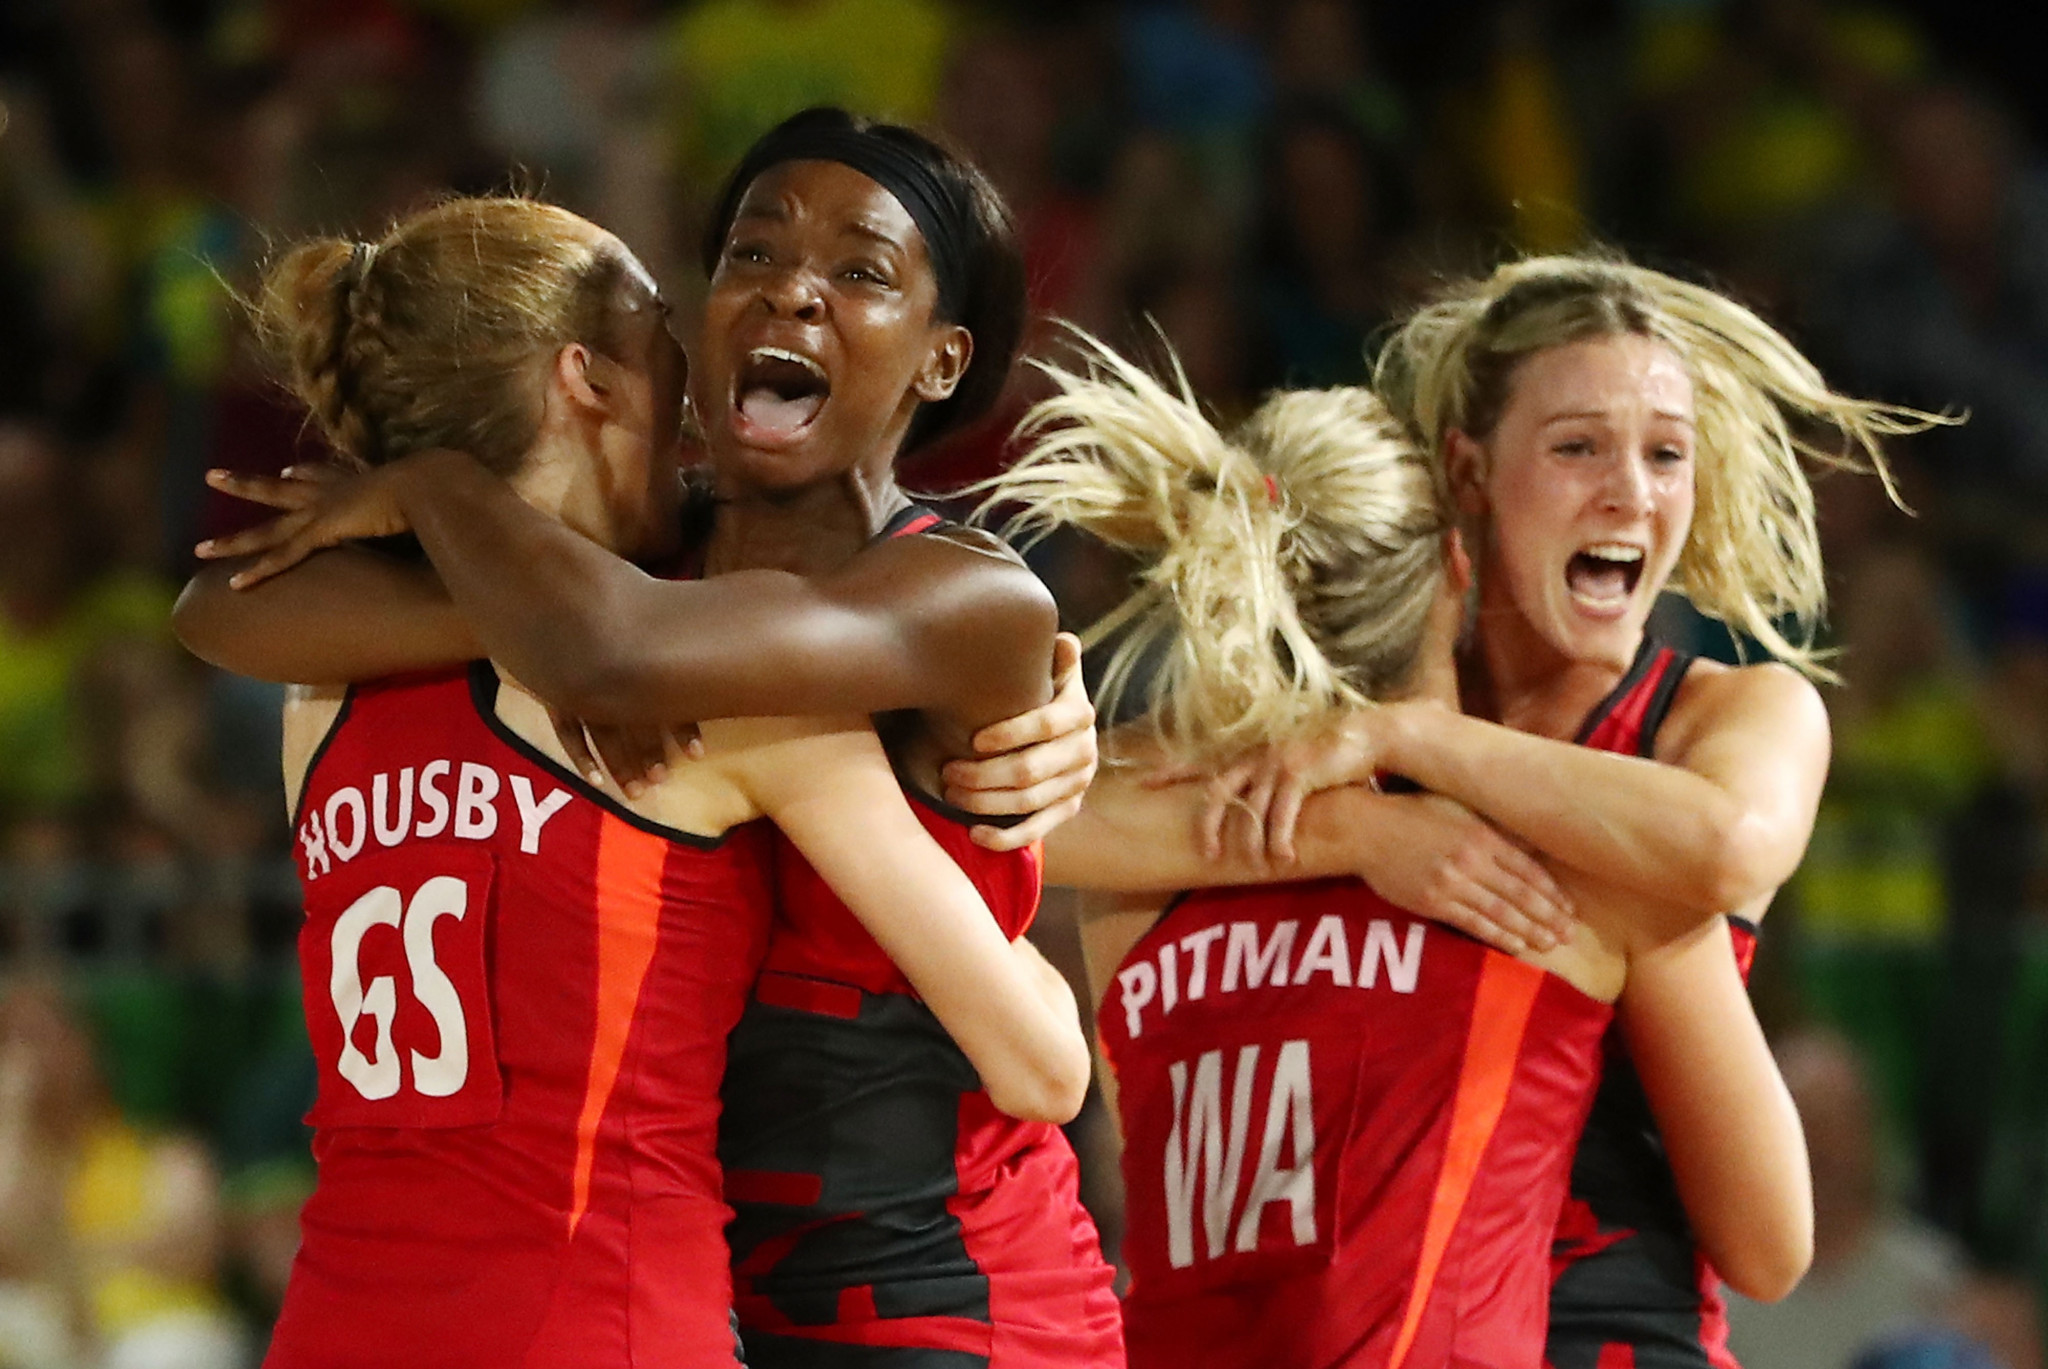 Birmingham 2022 to focus on women's sport on penultimate day of Games